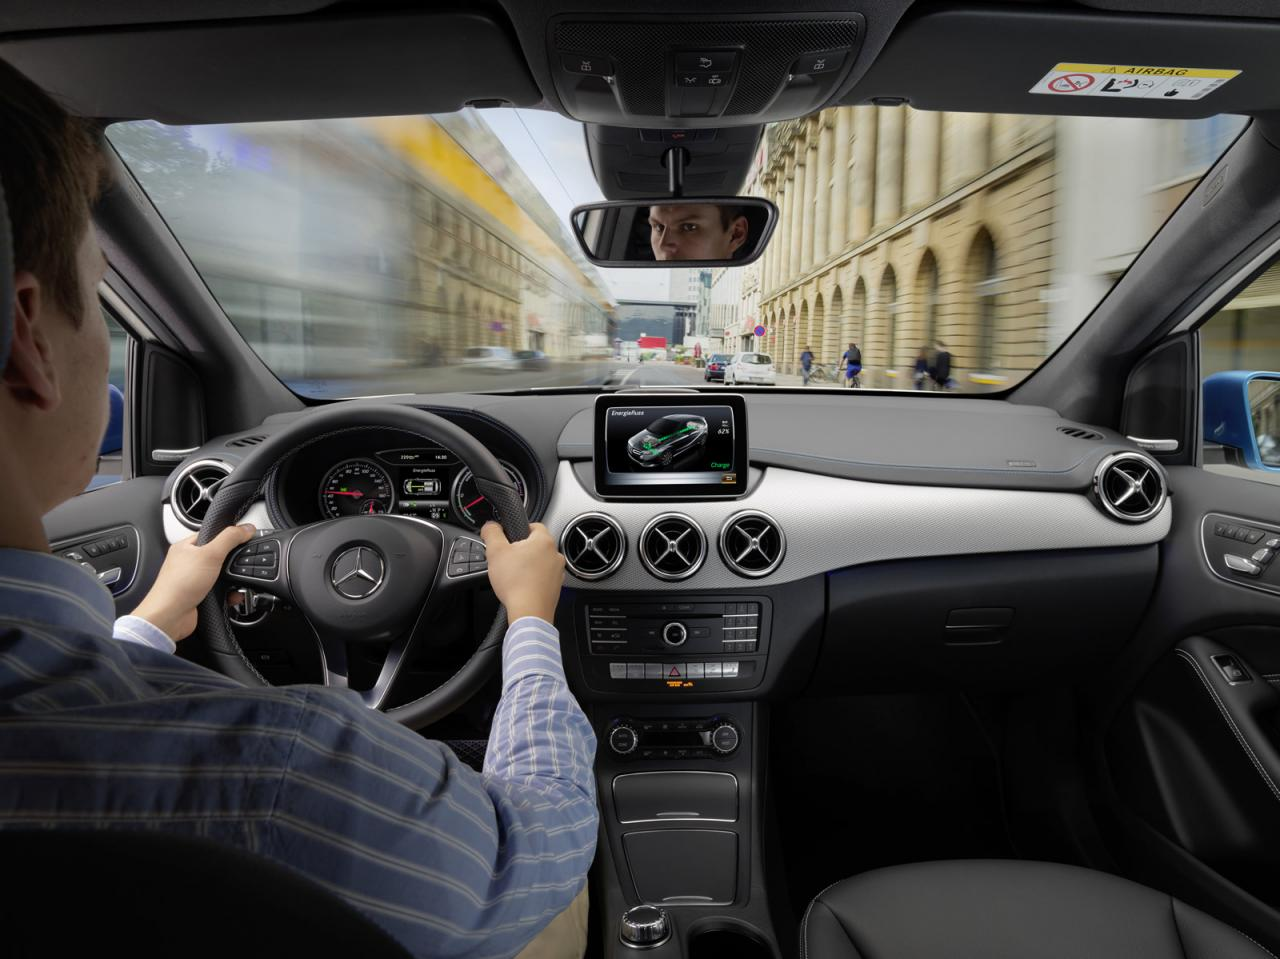 2015 mercedes benz b class revealed with mild updates for Mercedes benz collision prevention assist